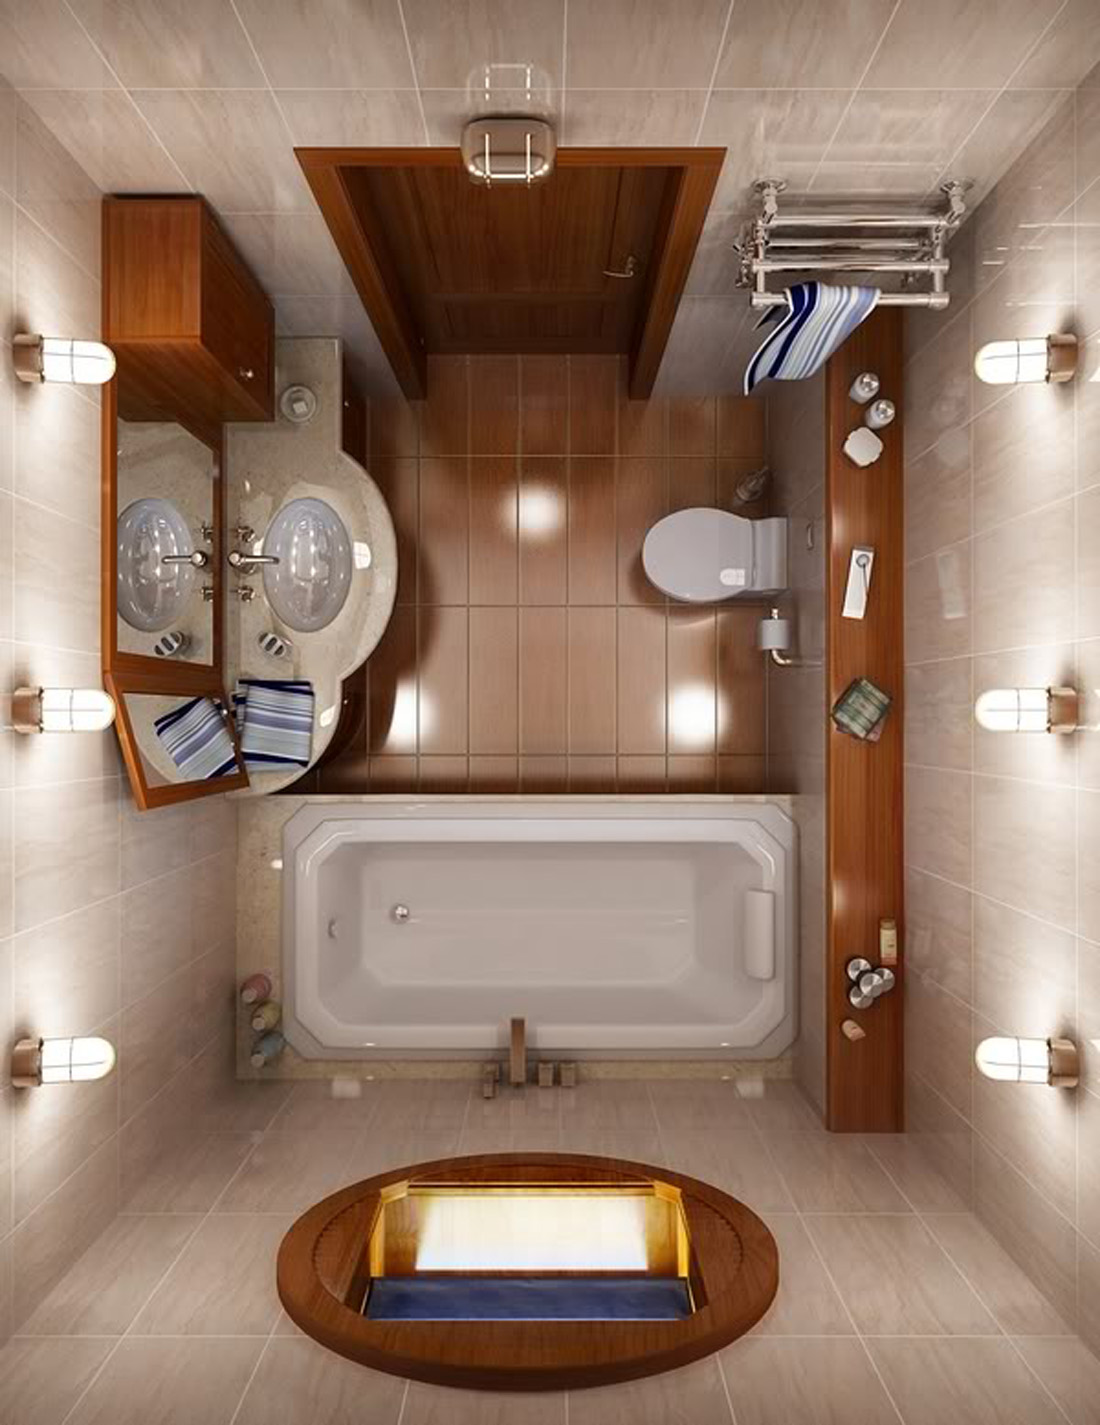 6x9 bathroom layout - Small Bathroom Ideas Photo Gallery Dream House Experience